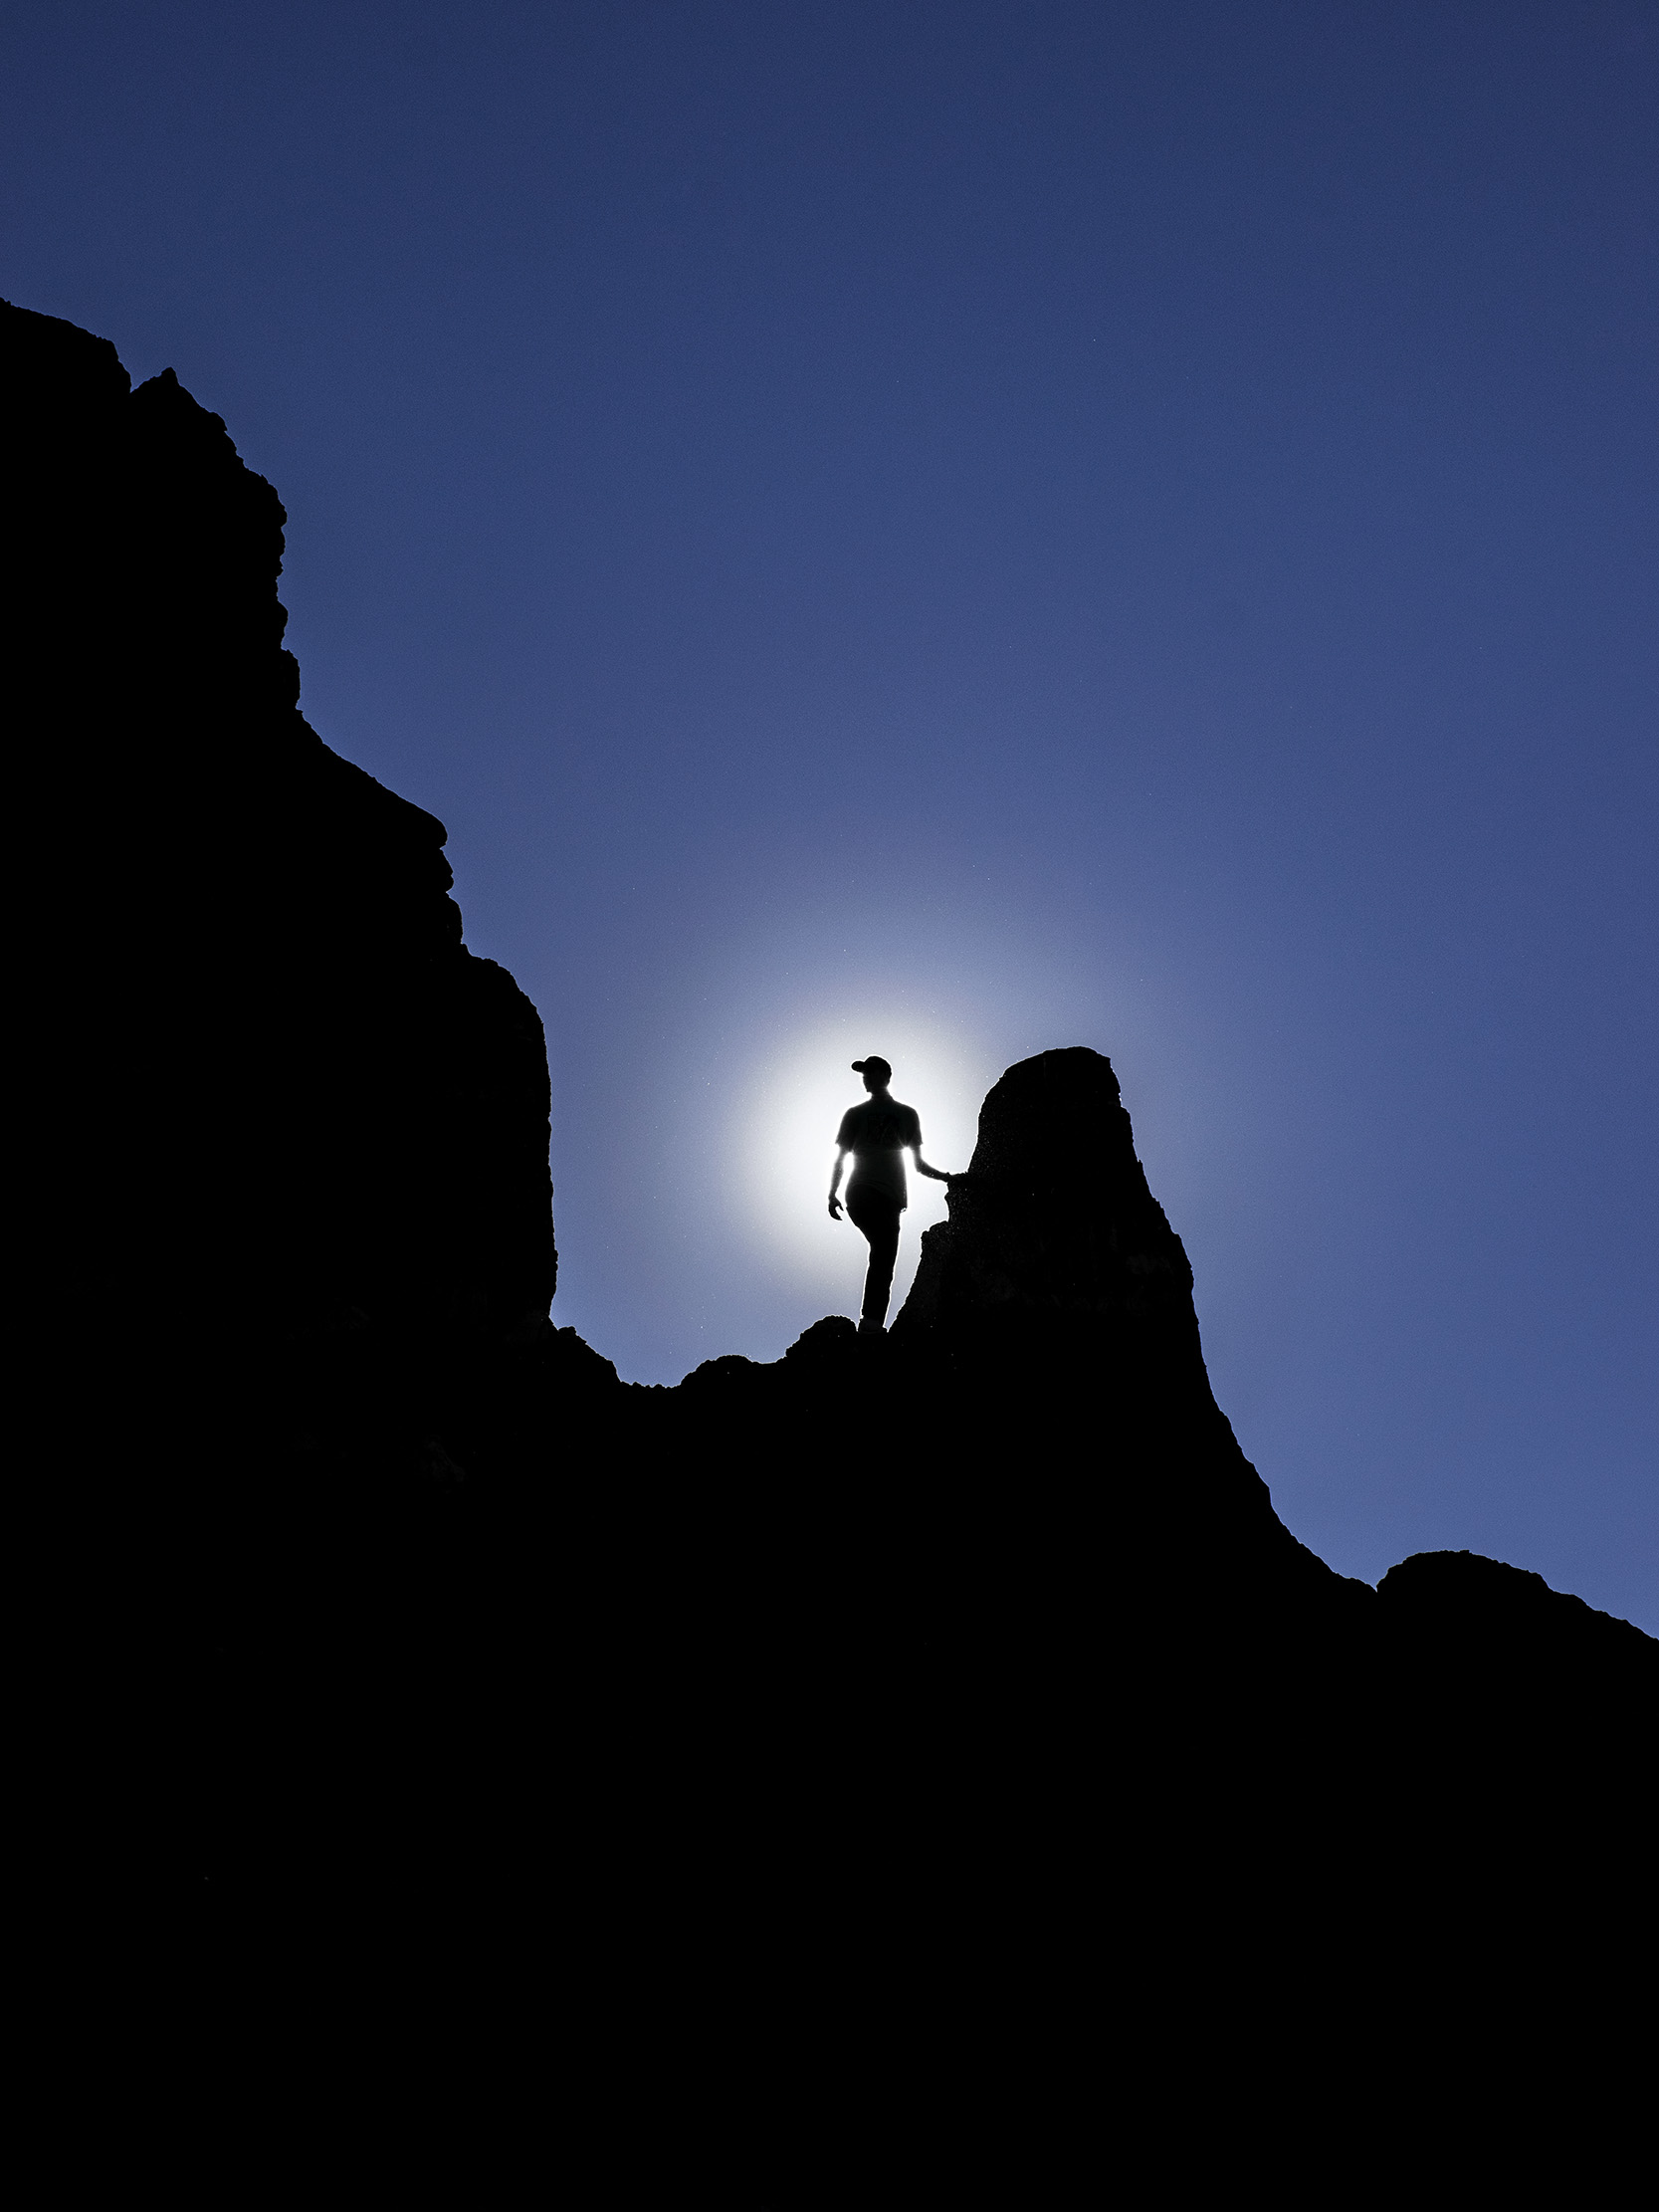 Silhouette of Timm Derrickson standing on a cliff edge at Palo Duro canyon